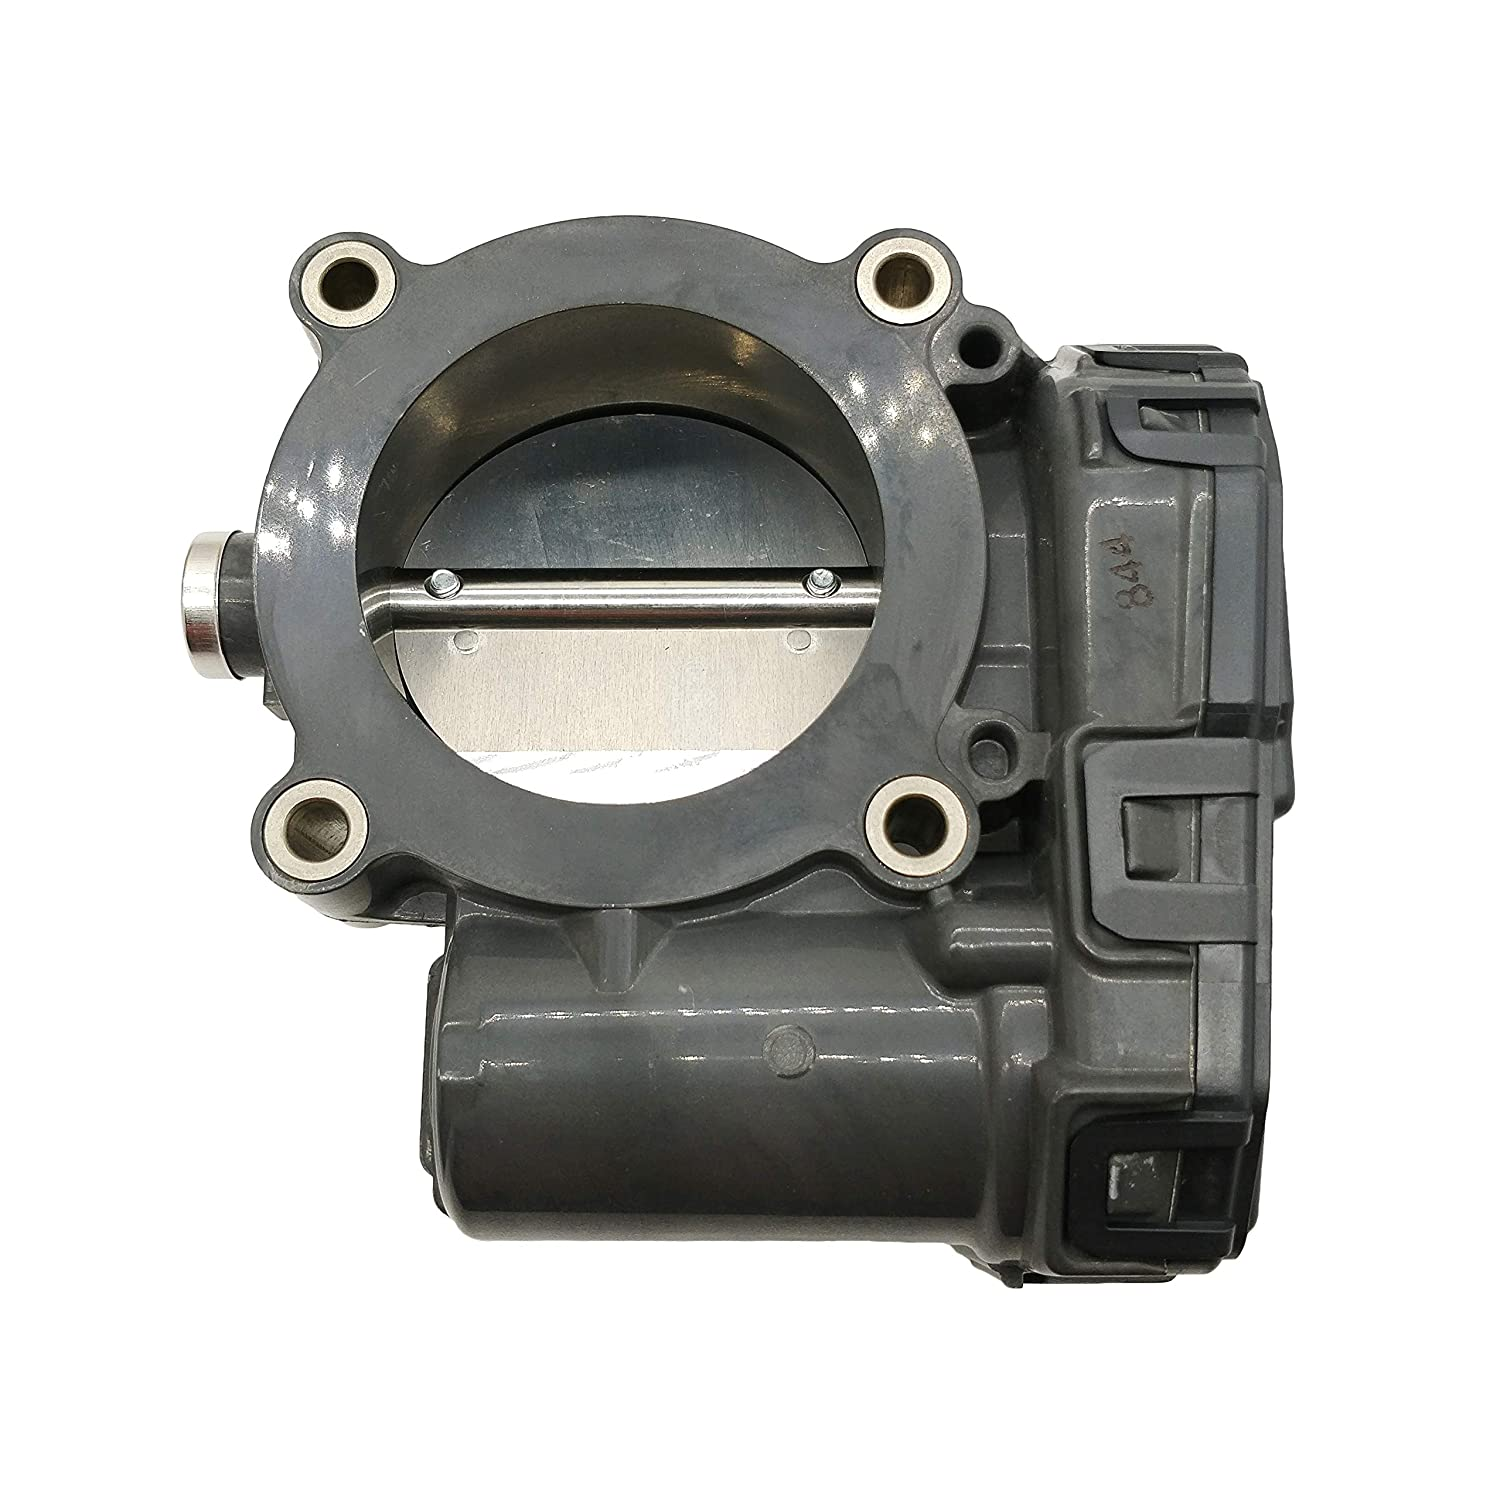 OKAY MOTOR Fuel Injection Throttle Body for 2007-2010 Jeep Liberty Grand Cherokee Commander Dodge Nitro 3.7L 4861661AA 4861661AB